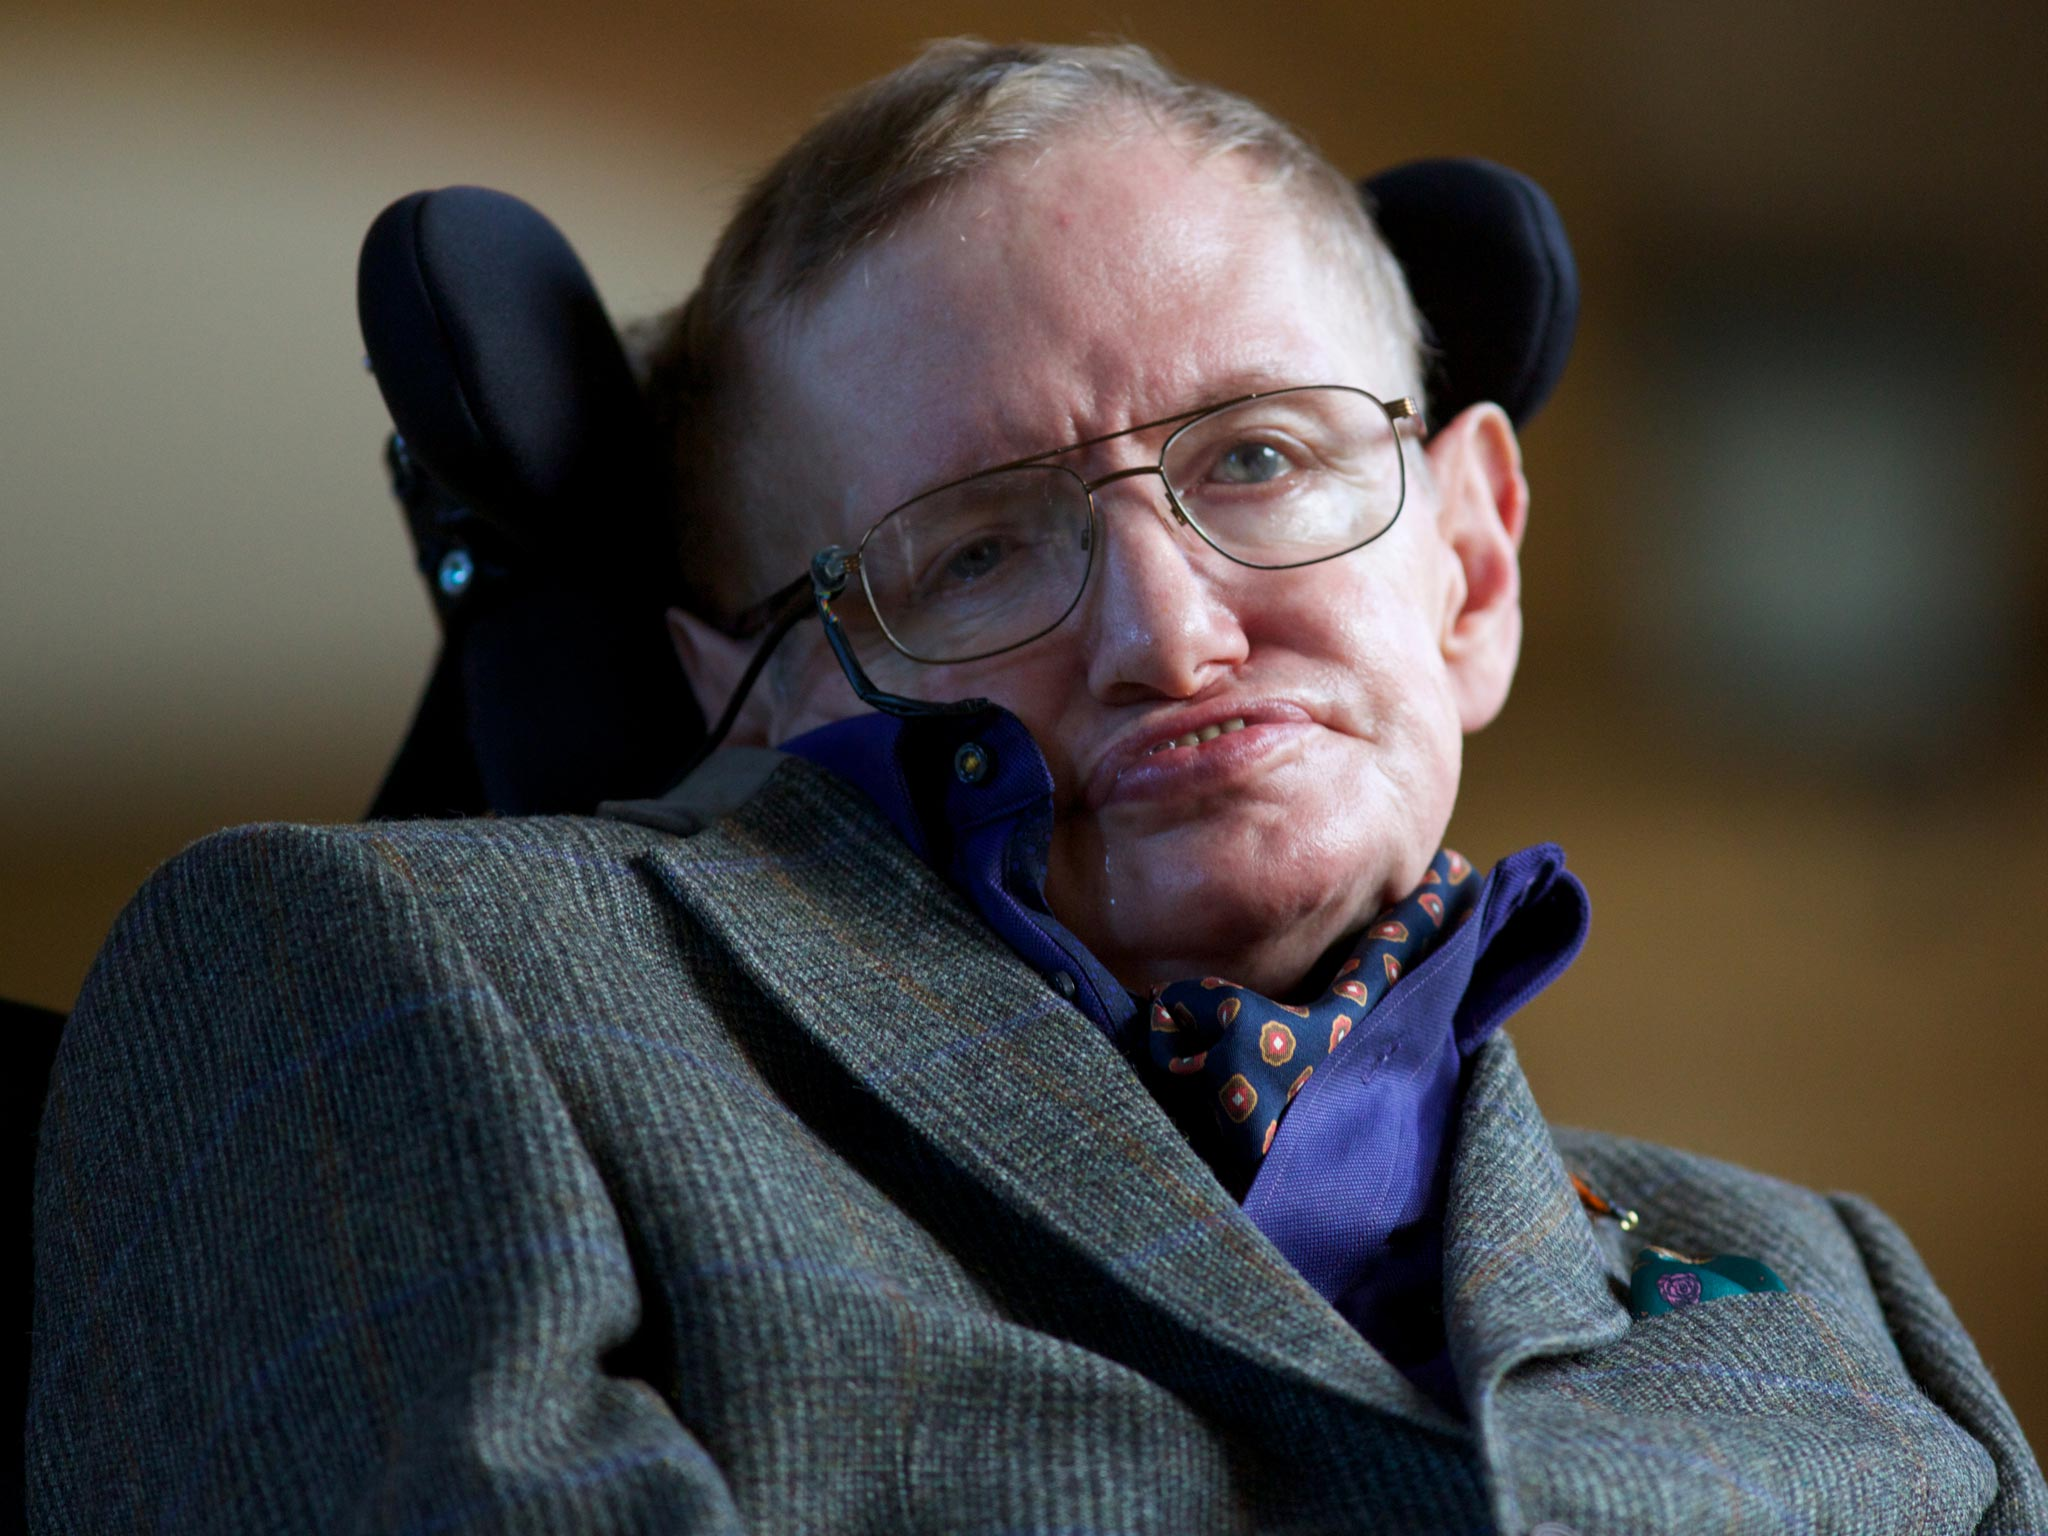 http://static.independent.co.uk/s3fs-public/thumbnails/image/2014/05/01/21/stephen-hawking.jpg